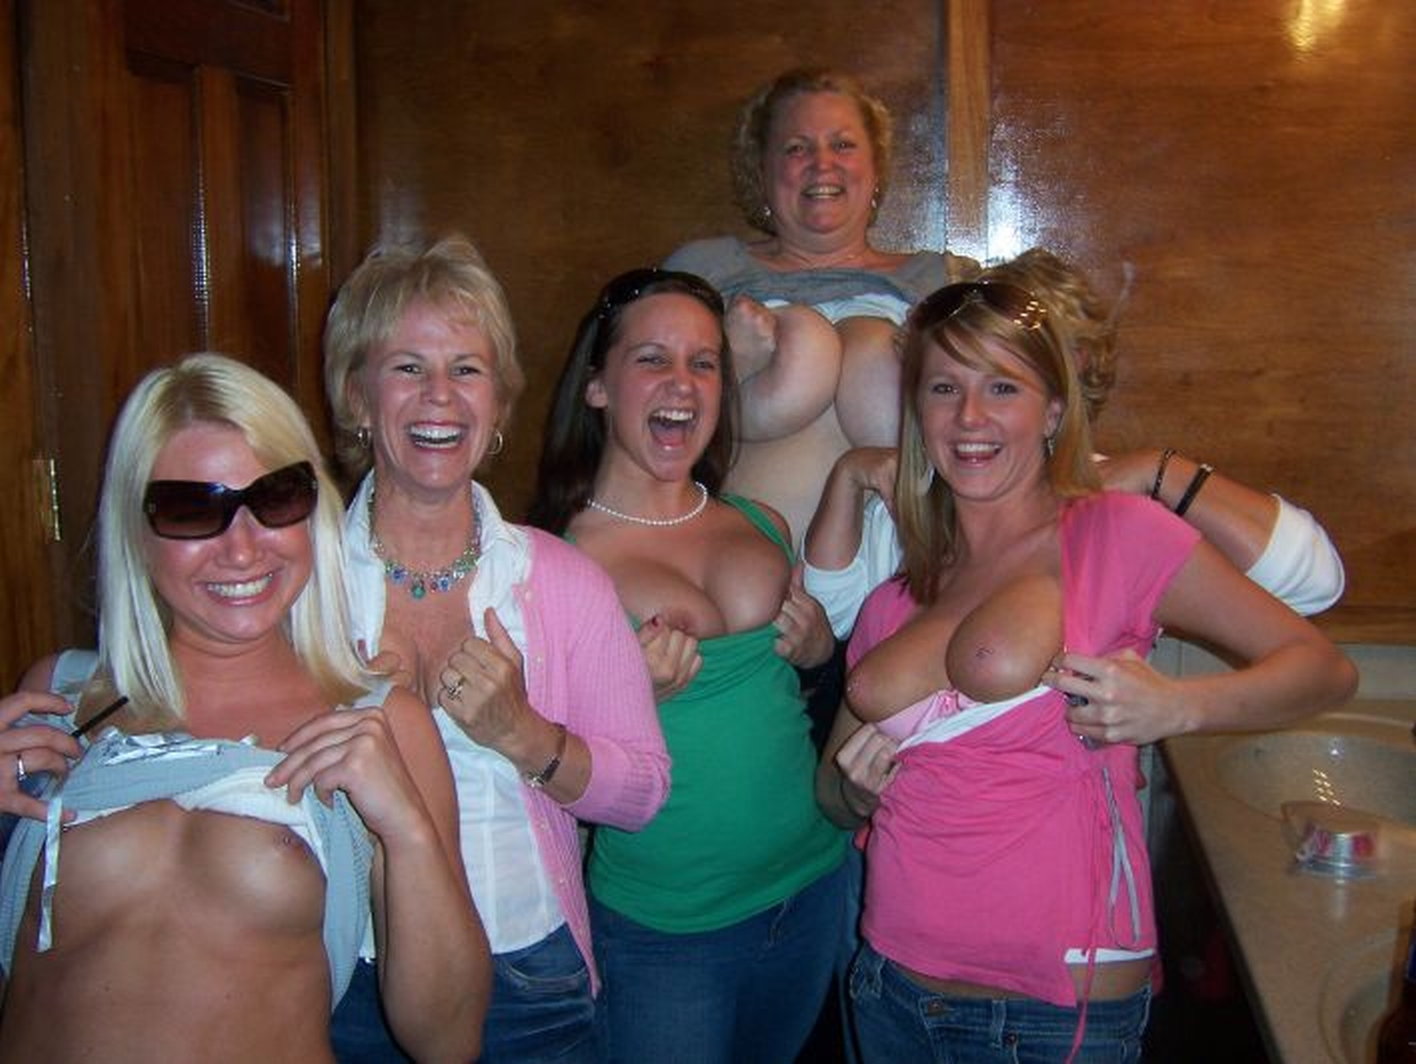 naked-groups-of-girls-showing-their-boobs-wet-black-ghetto-pussy